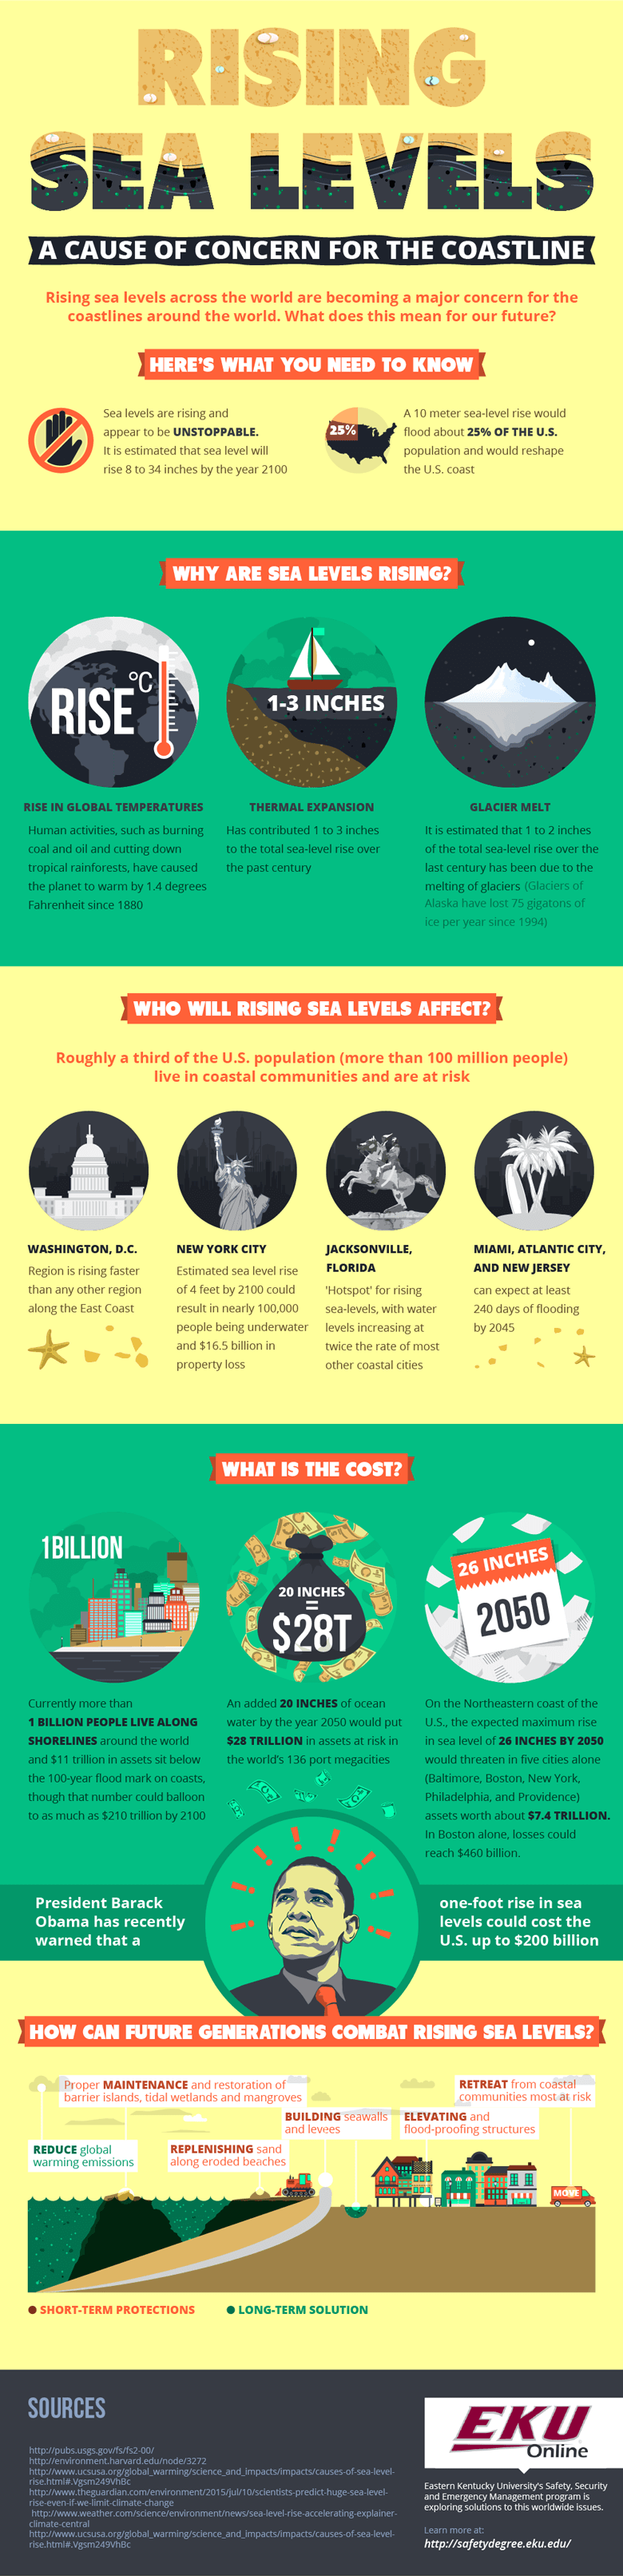 Infographic on Rising Sea Levels